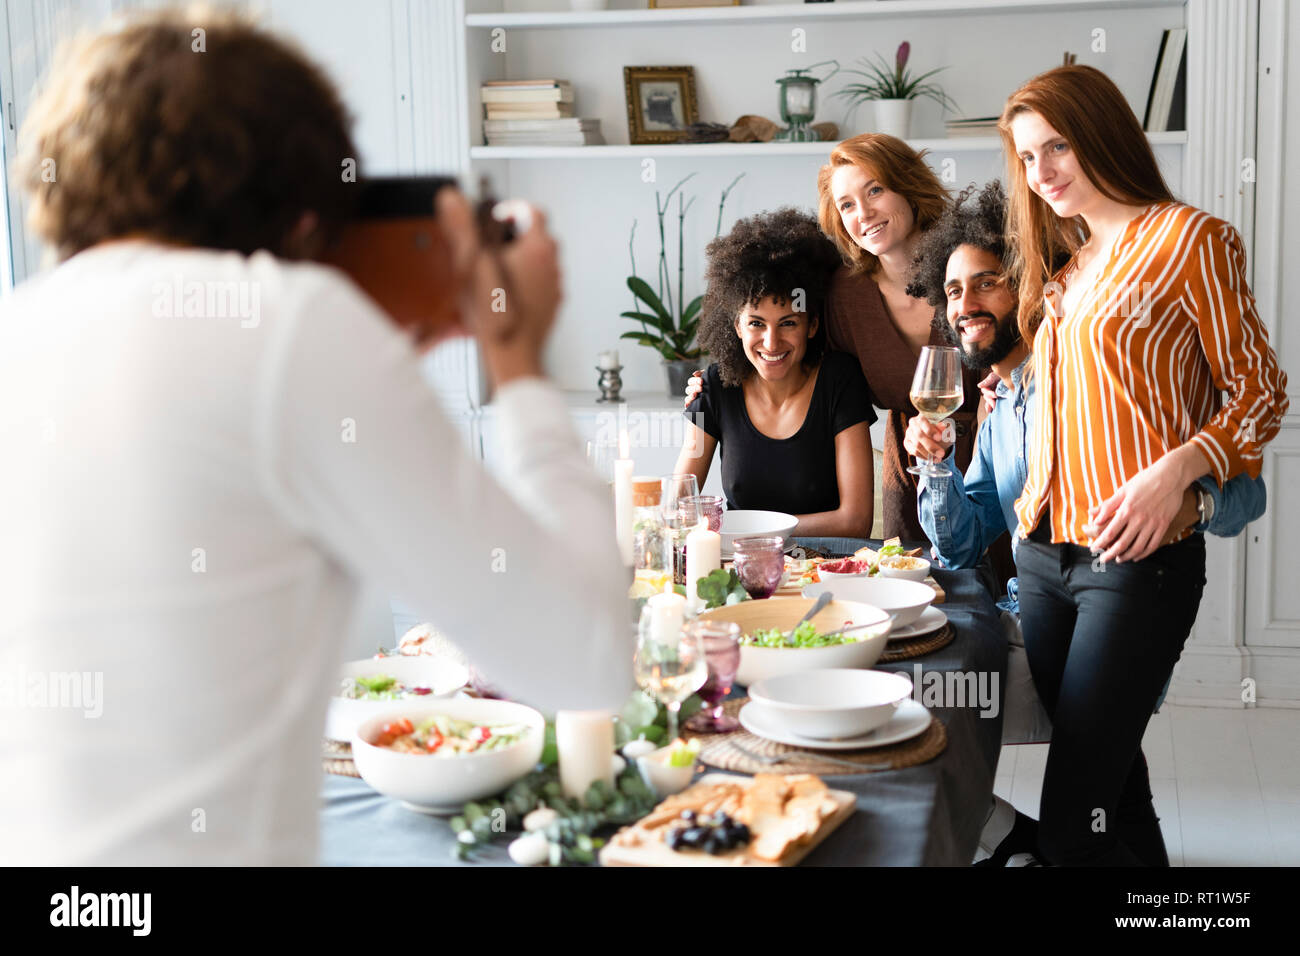 Friends taking a group picture as memory of a dinner party - Stock Image